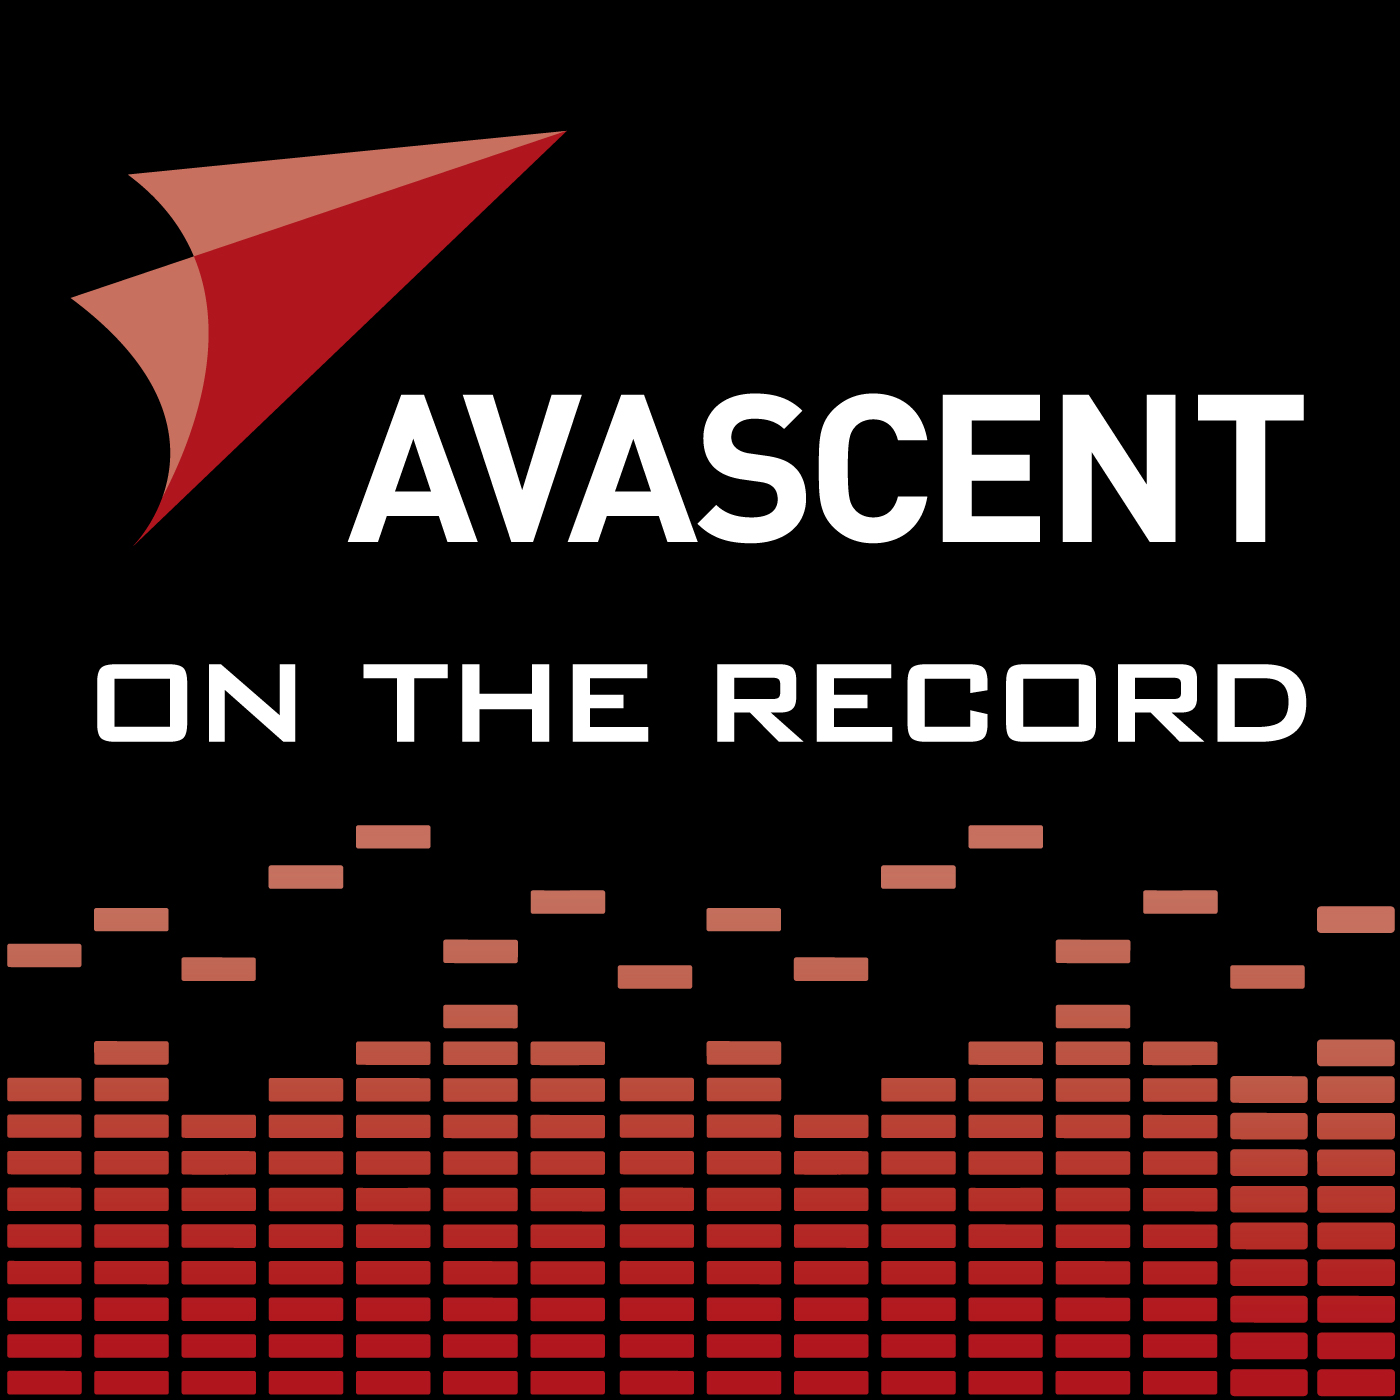 Avascent On the Record